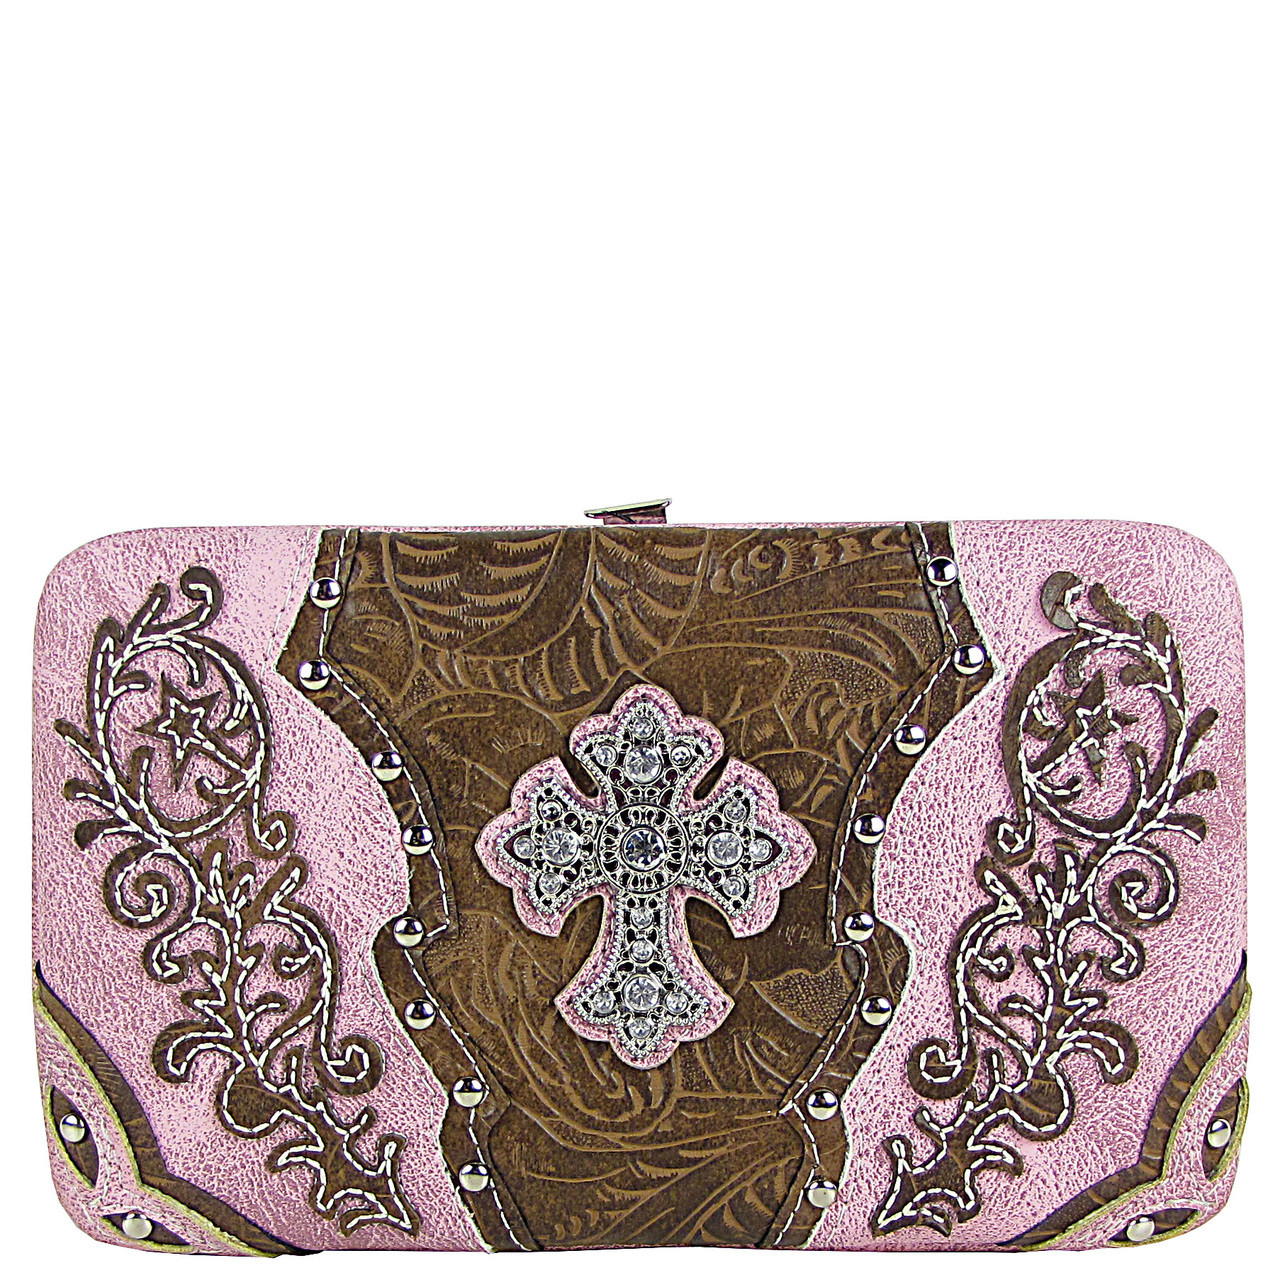 PINK STUDDED RHINESTONE TOOLED CROSS LOOK FLAT THICK WALLET FW2-04121PNK